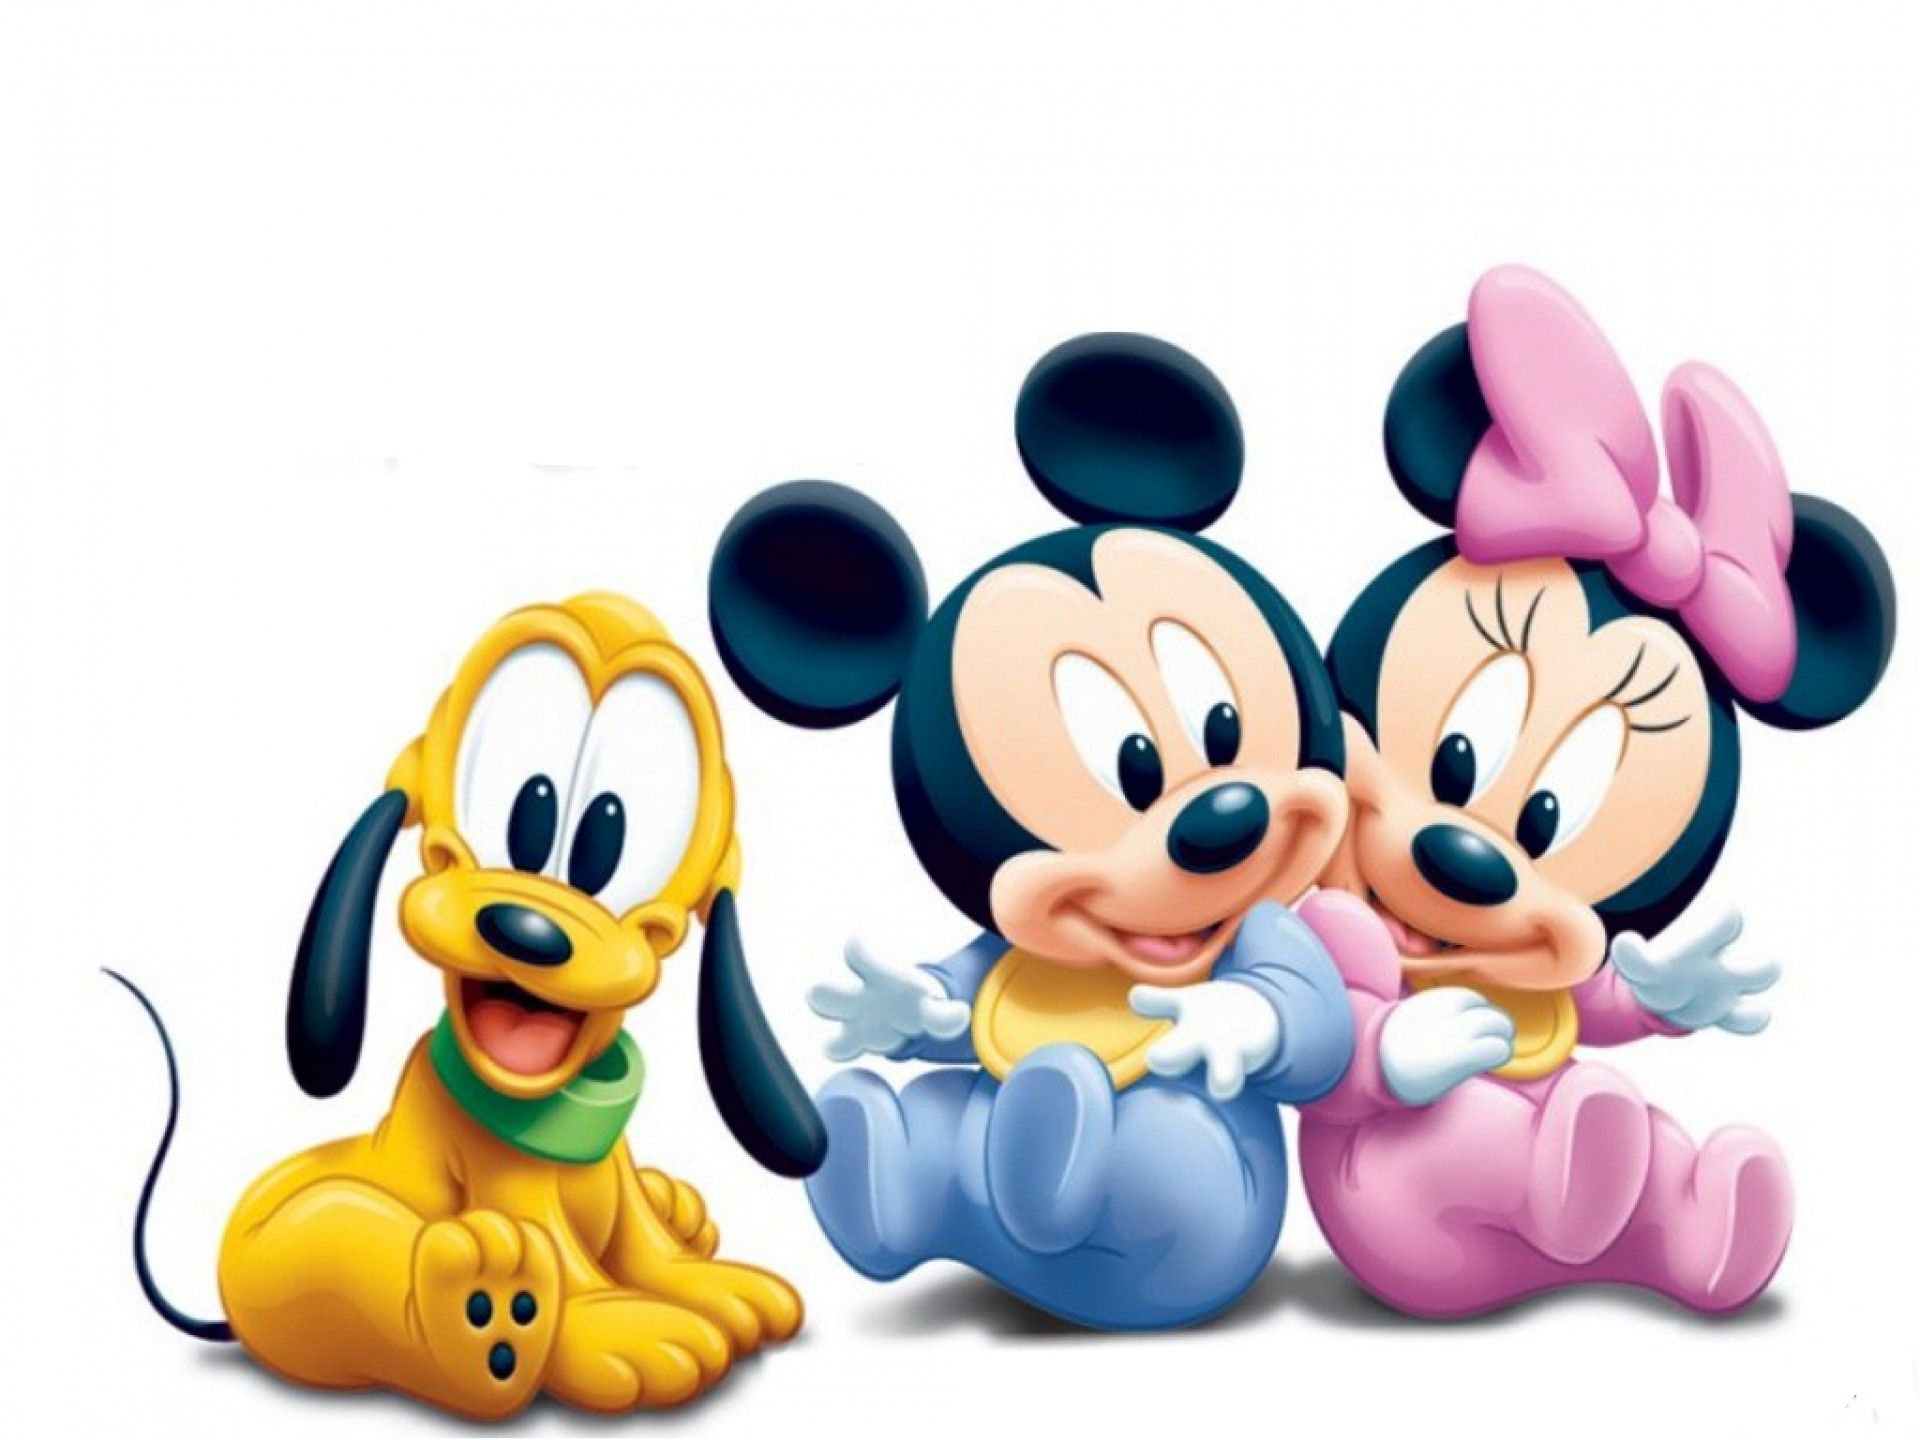 1920x1440 Mickey Mouse characters Images | PixelsTalk.Net